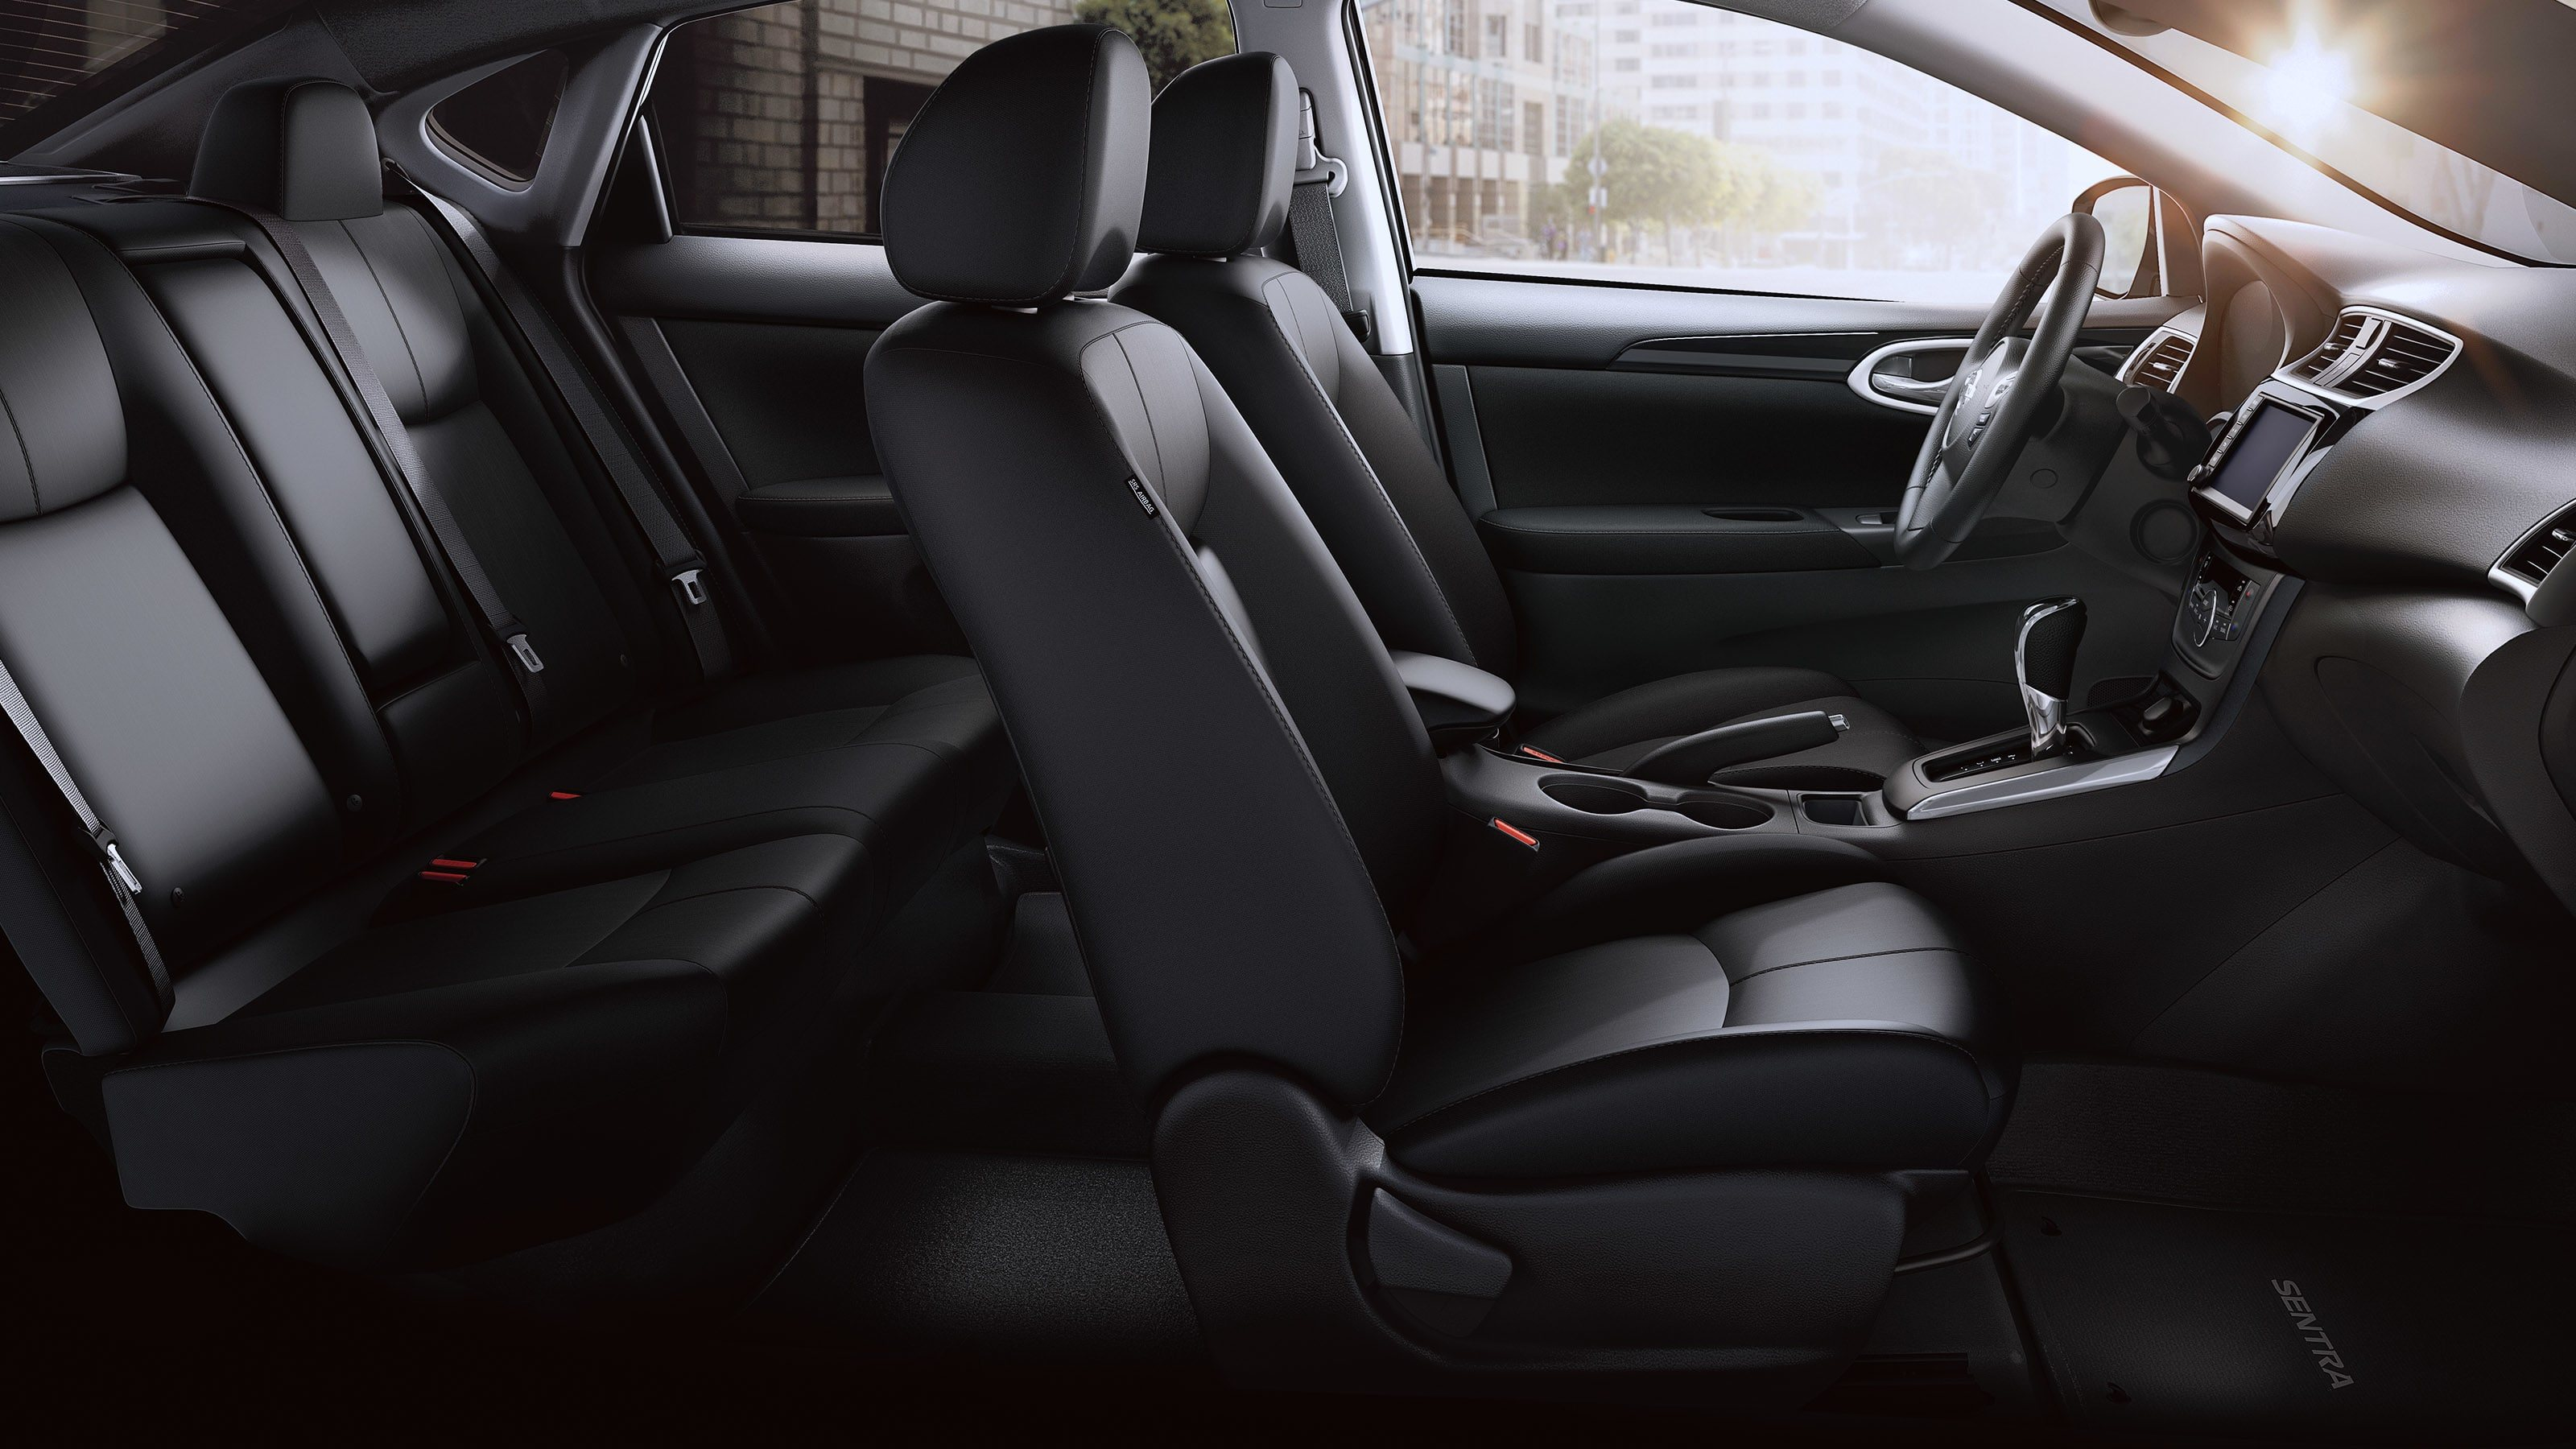 New 2019 Nissan Sentra Roomy Seating With Ample Leg Room